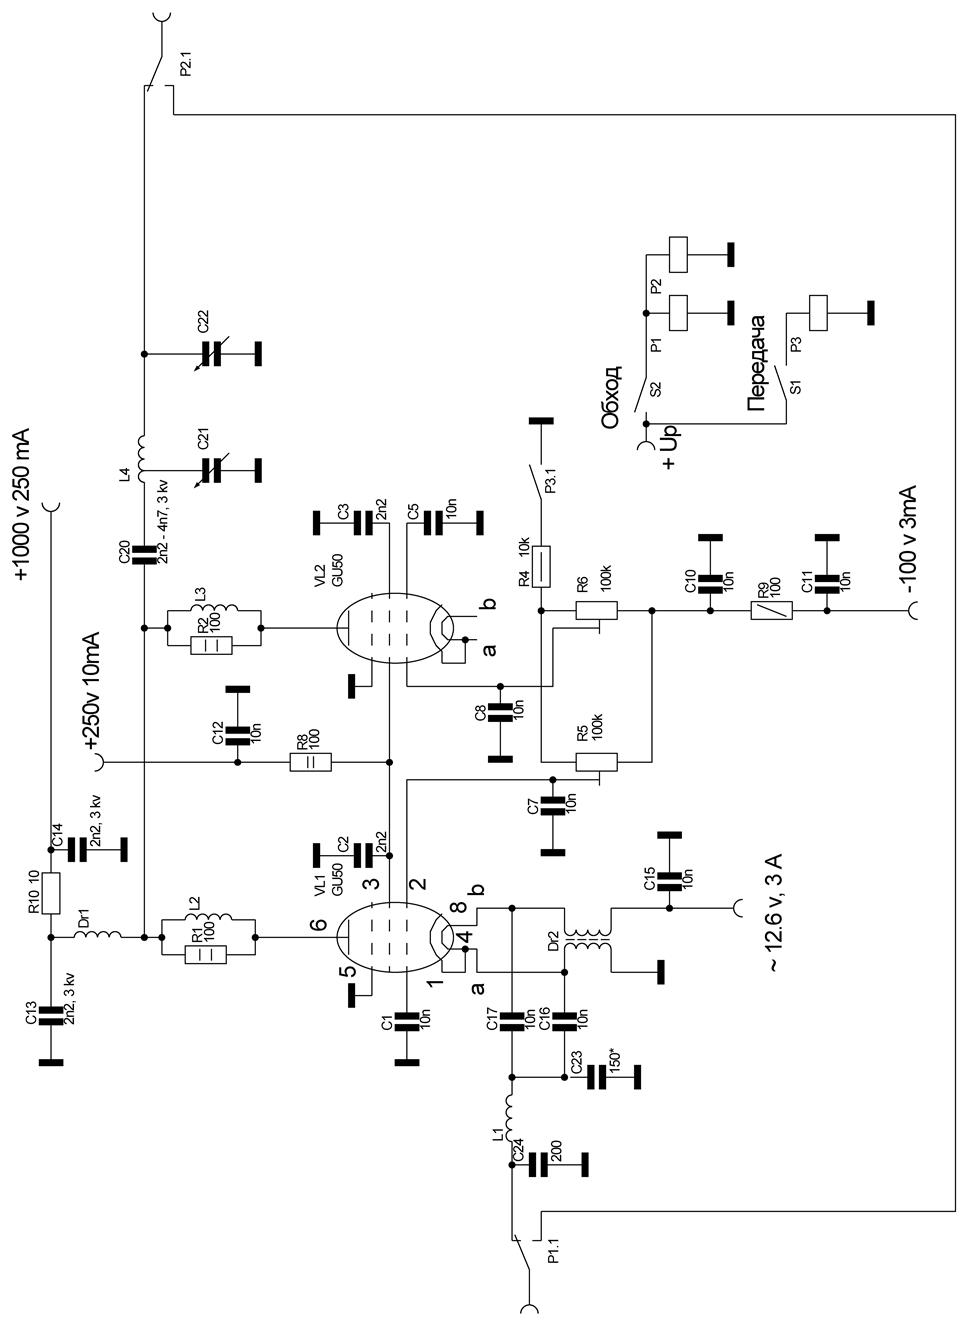 Wiring Diagram Isuzu Panther